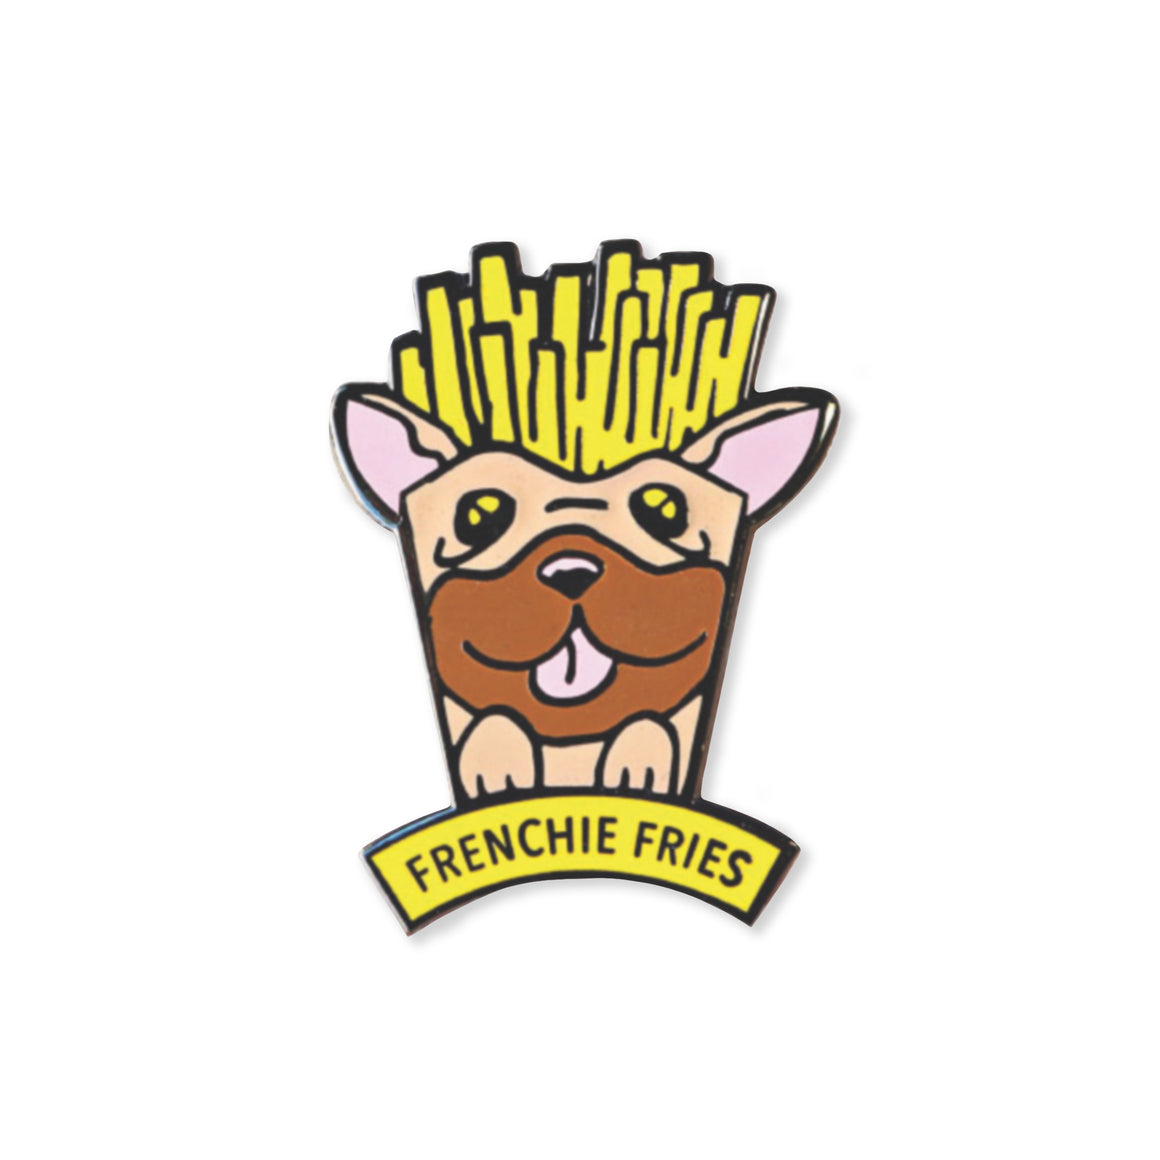 frenchie fries | enamel pin